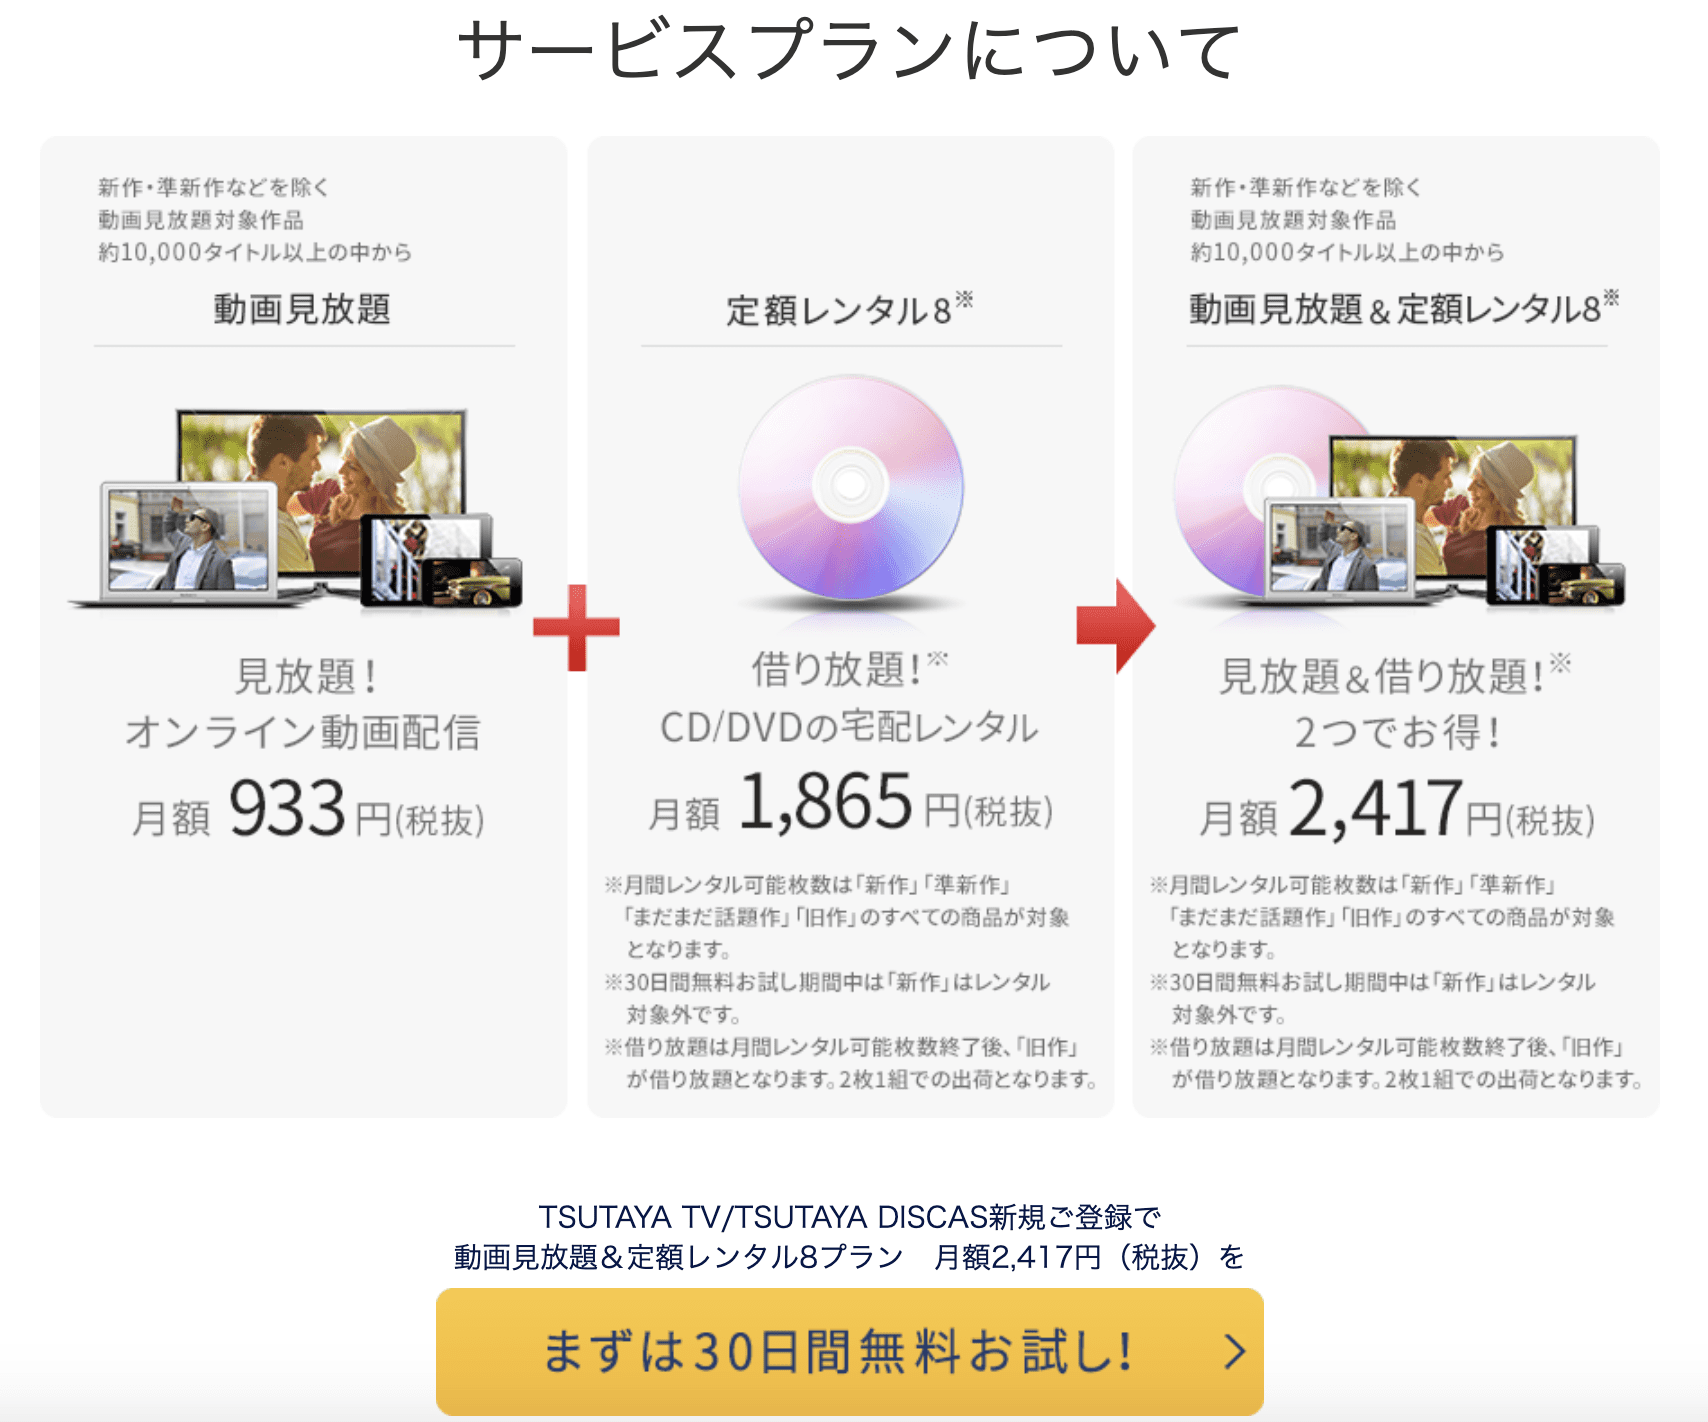 FINAL CUTをTSUTAYA DISCAS/TSUTAYA TVの無料期間で見る